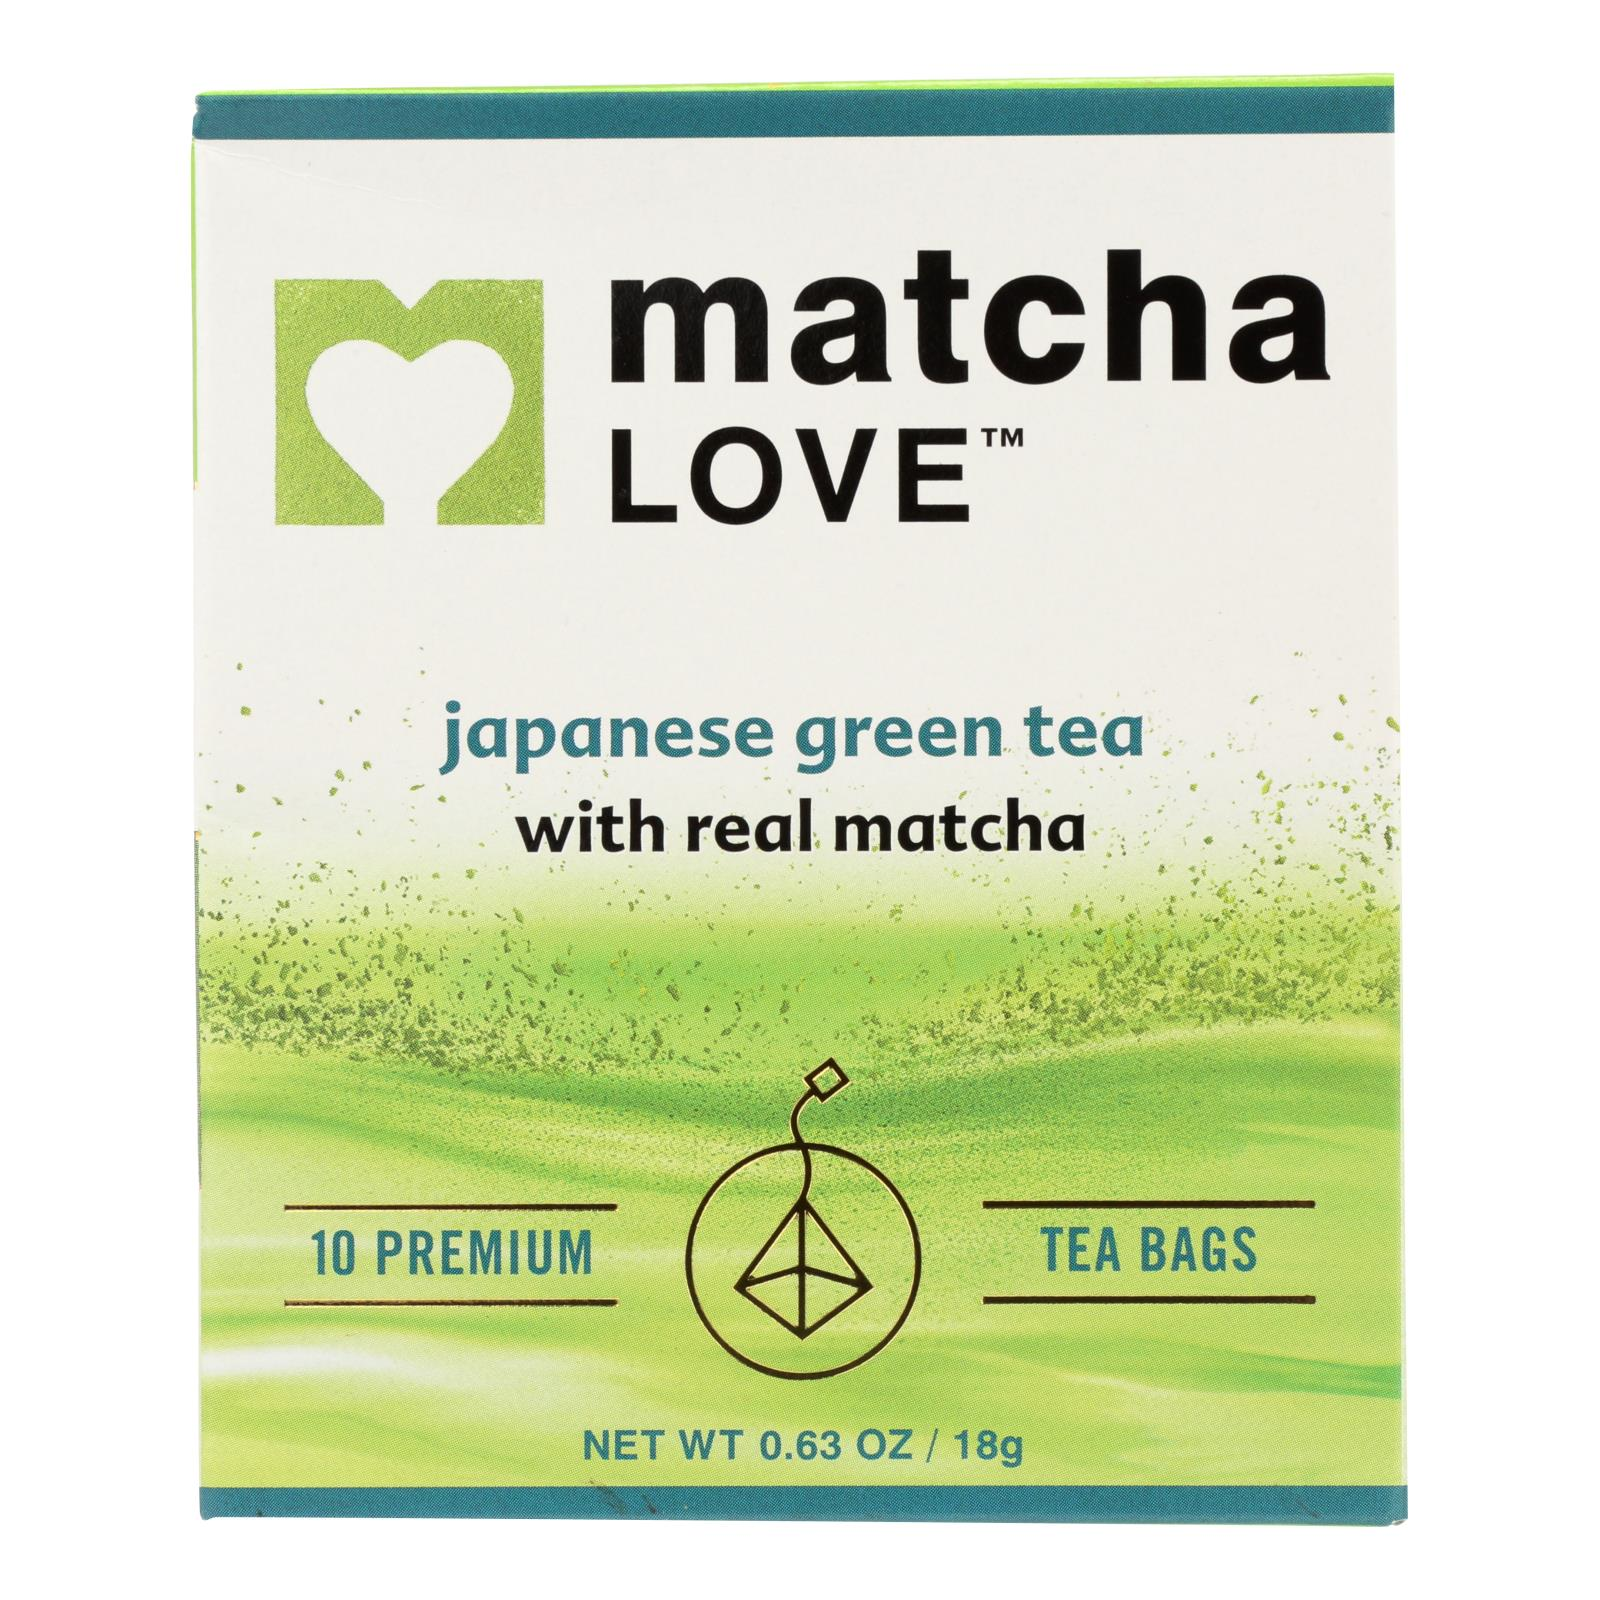 Matcha Love In Matcha Green Tea Traditional Flavor  - Case of 6 - 10 BAGS